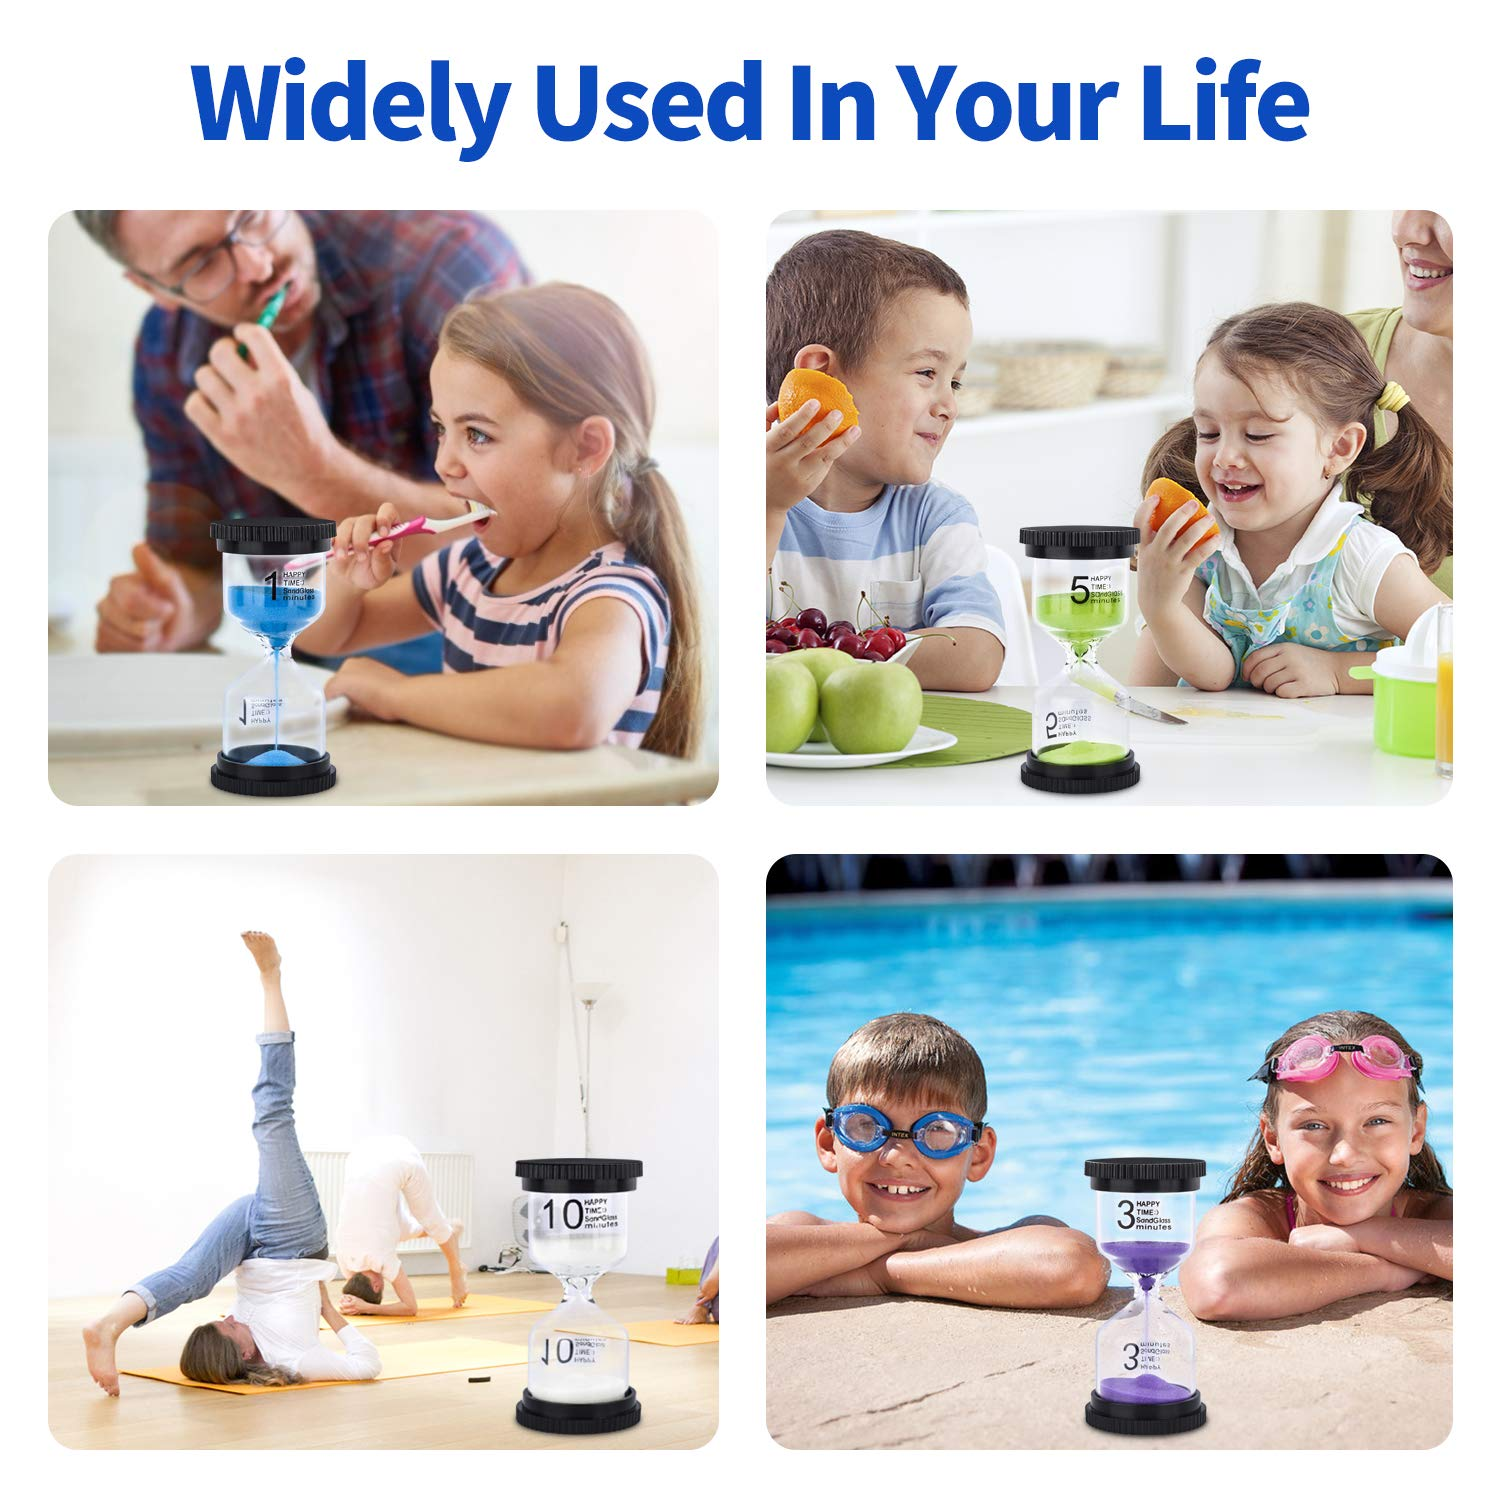 Sand Timer, 4 Colors Hourglass Sandglass Timer Sand Clock 1min/ 3mins/ 5mins/ 10mins for Kids, Games, Toothbrush Timer, Classroom, Kitchen Use, Home Office Decoration